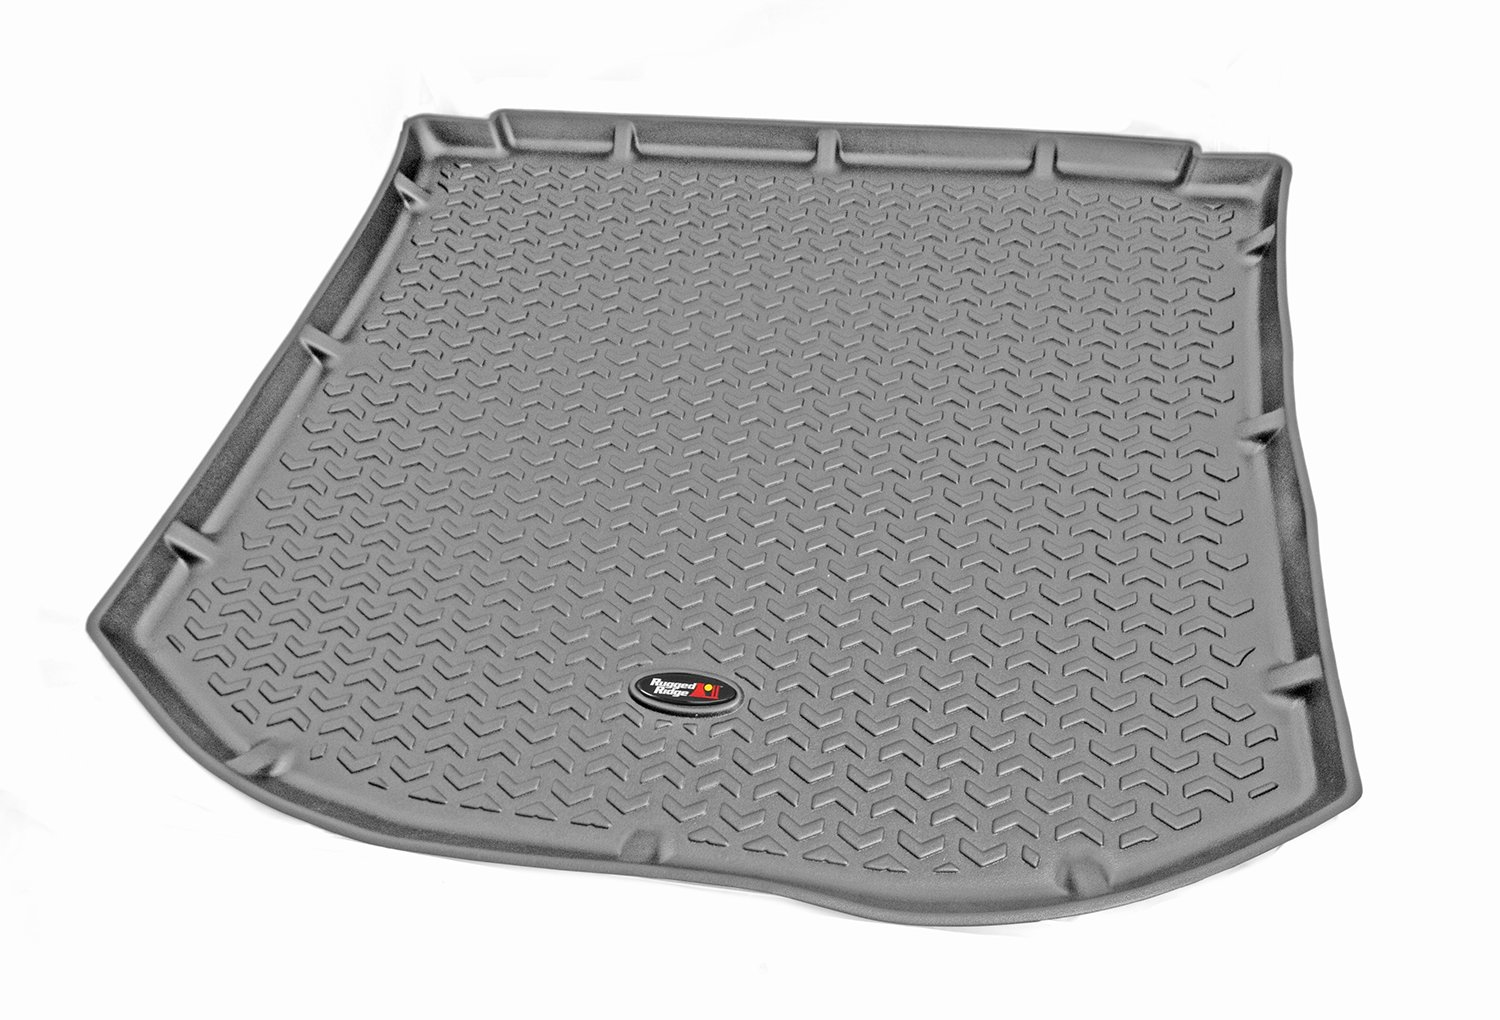 Amazon.com: Rugged Ridge All-Terrain 14975.23 Grey Cargo Liner For Select Jeep Grand Cherokee Models: Automotive